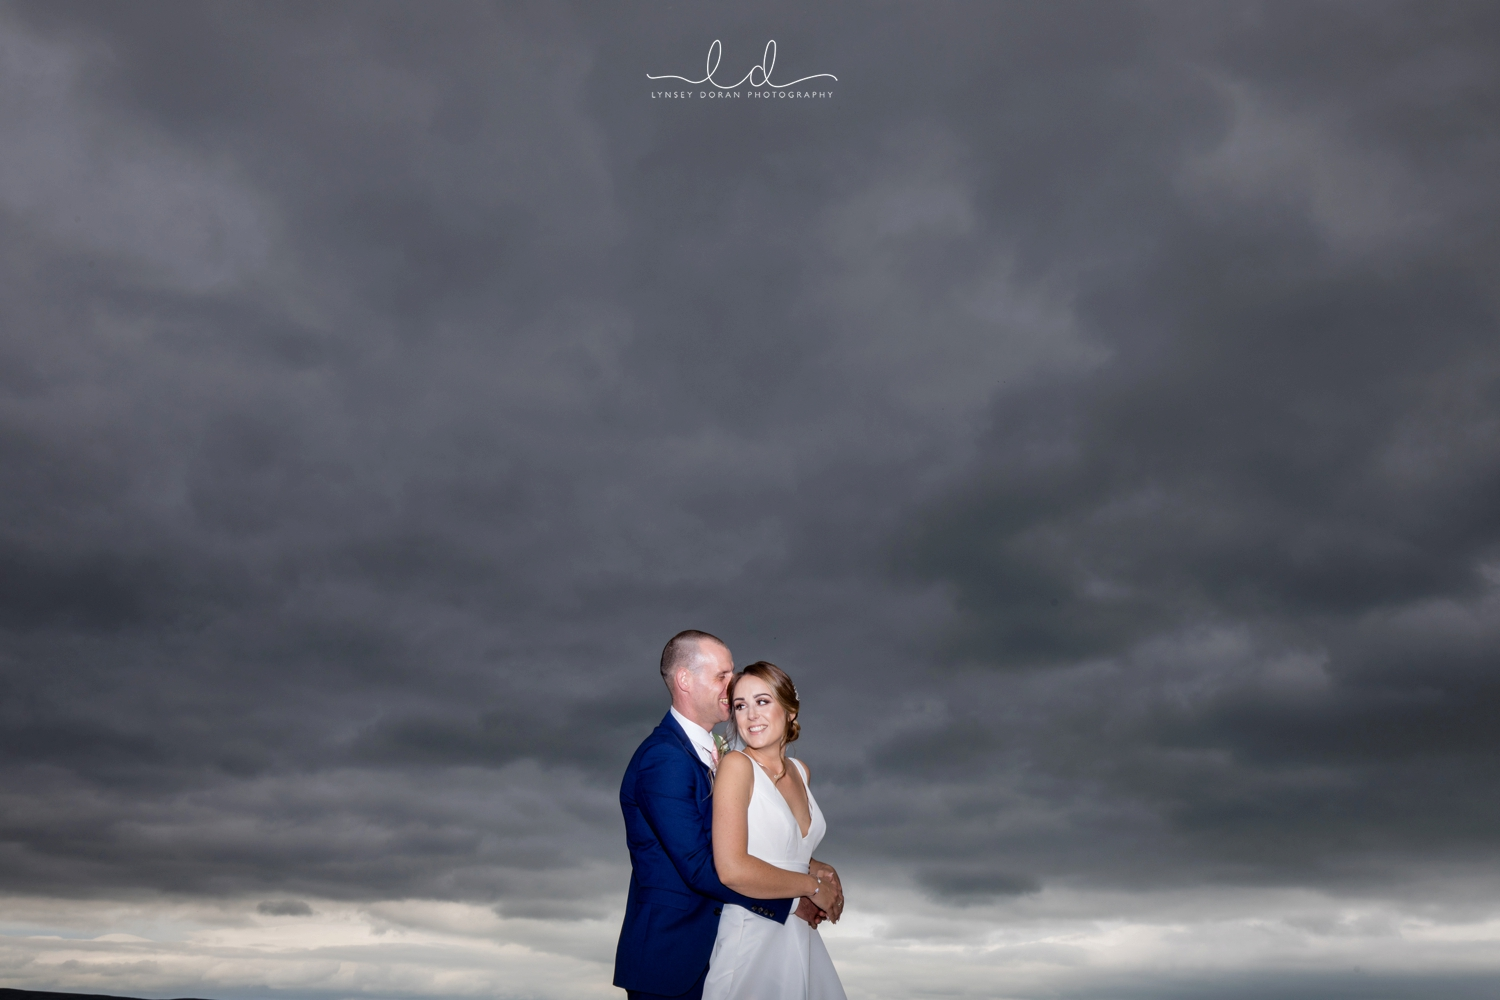 Relaxed Wedding Photographers Yorkshire | West Yorkshire Wedding Photography_0030